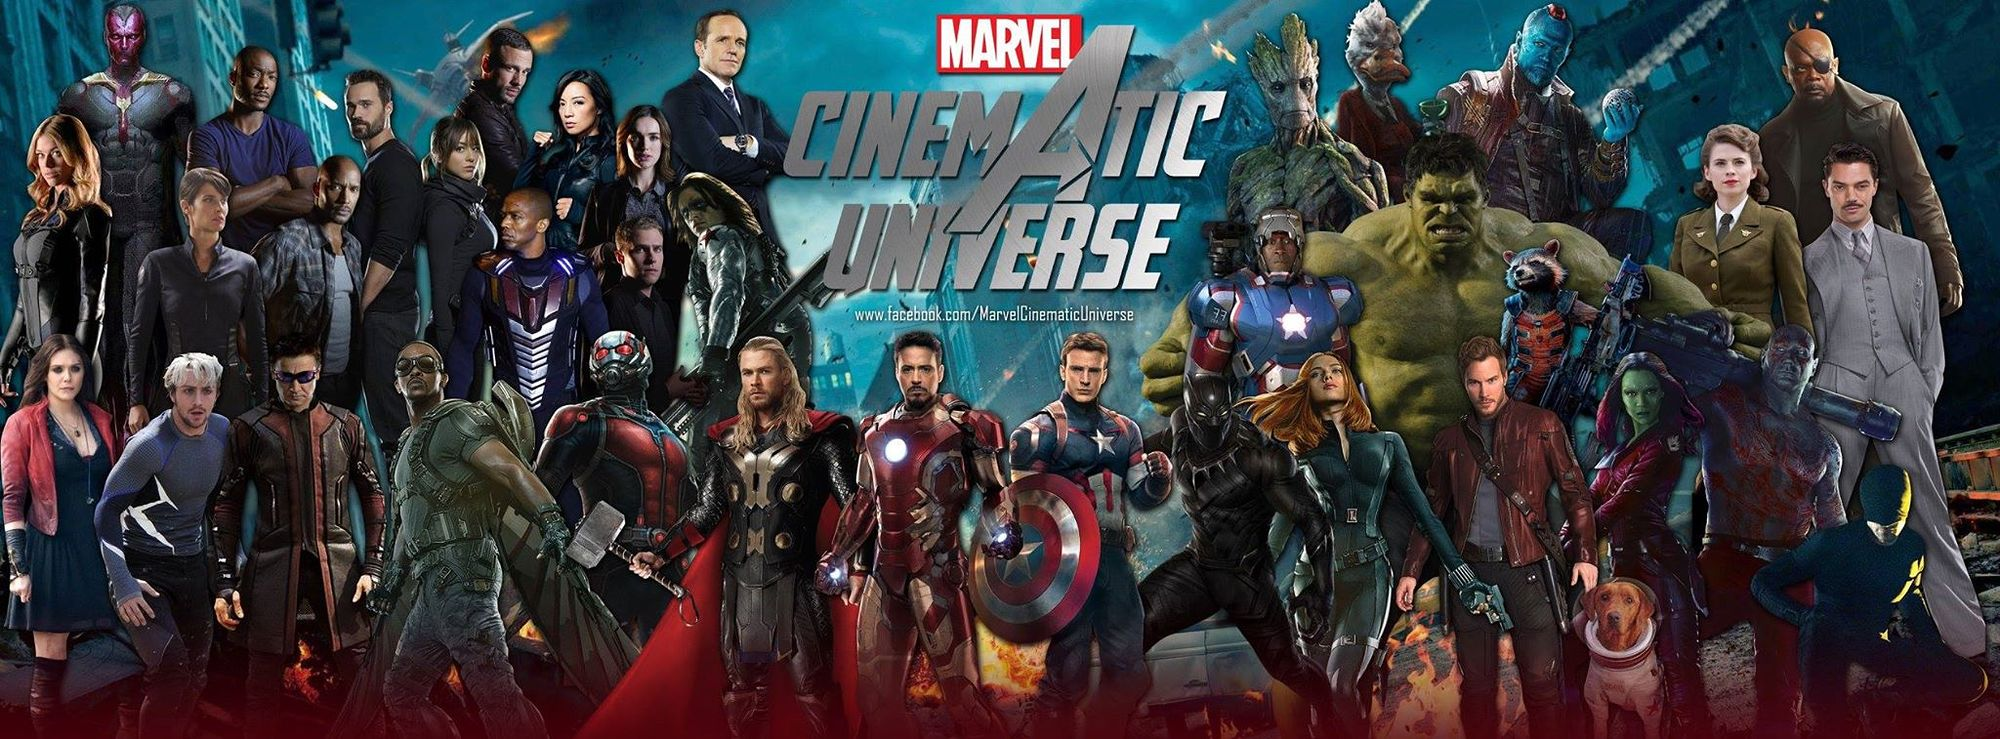 Ten Marvel Characters Who Deserve a Movie of Their Own 2000x739